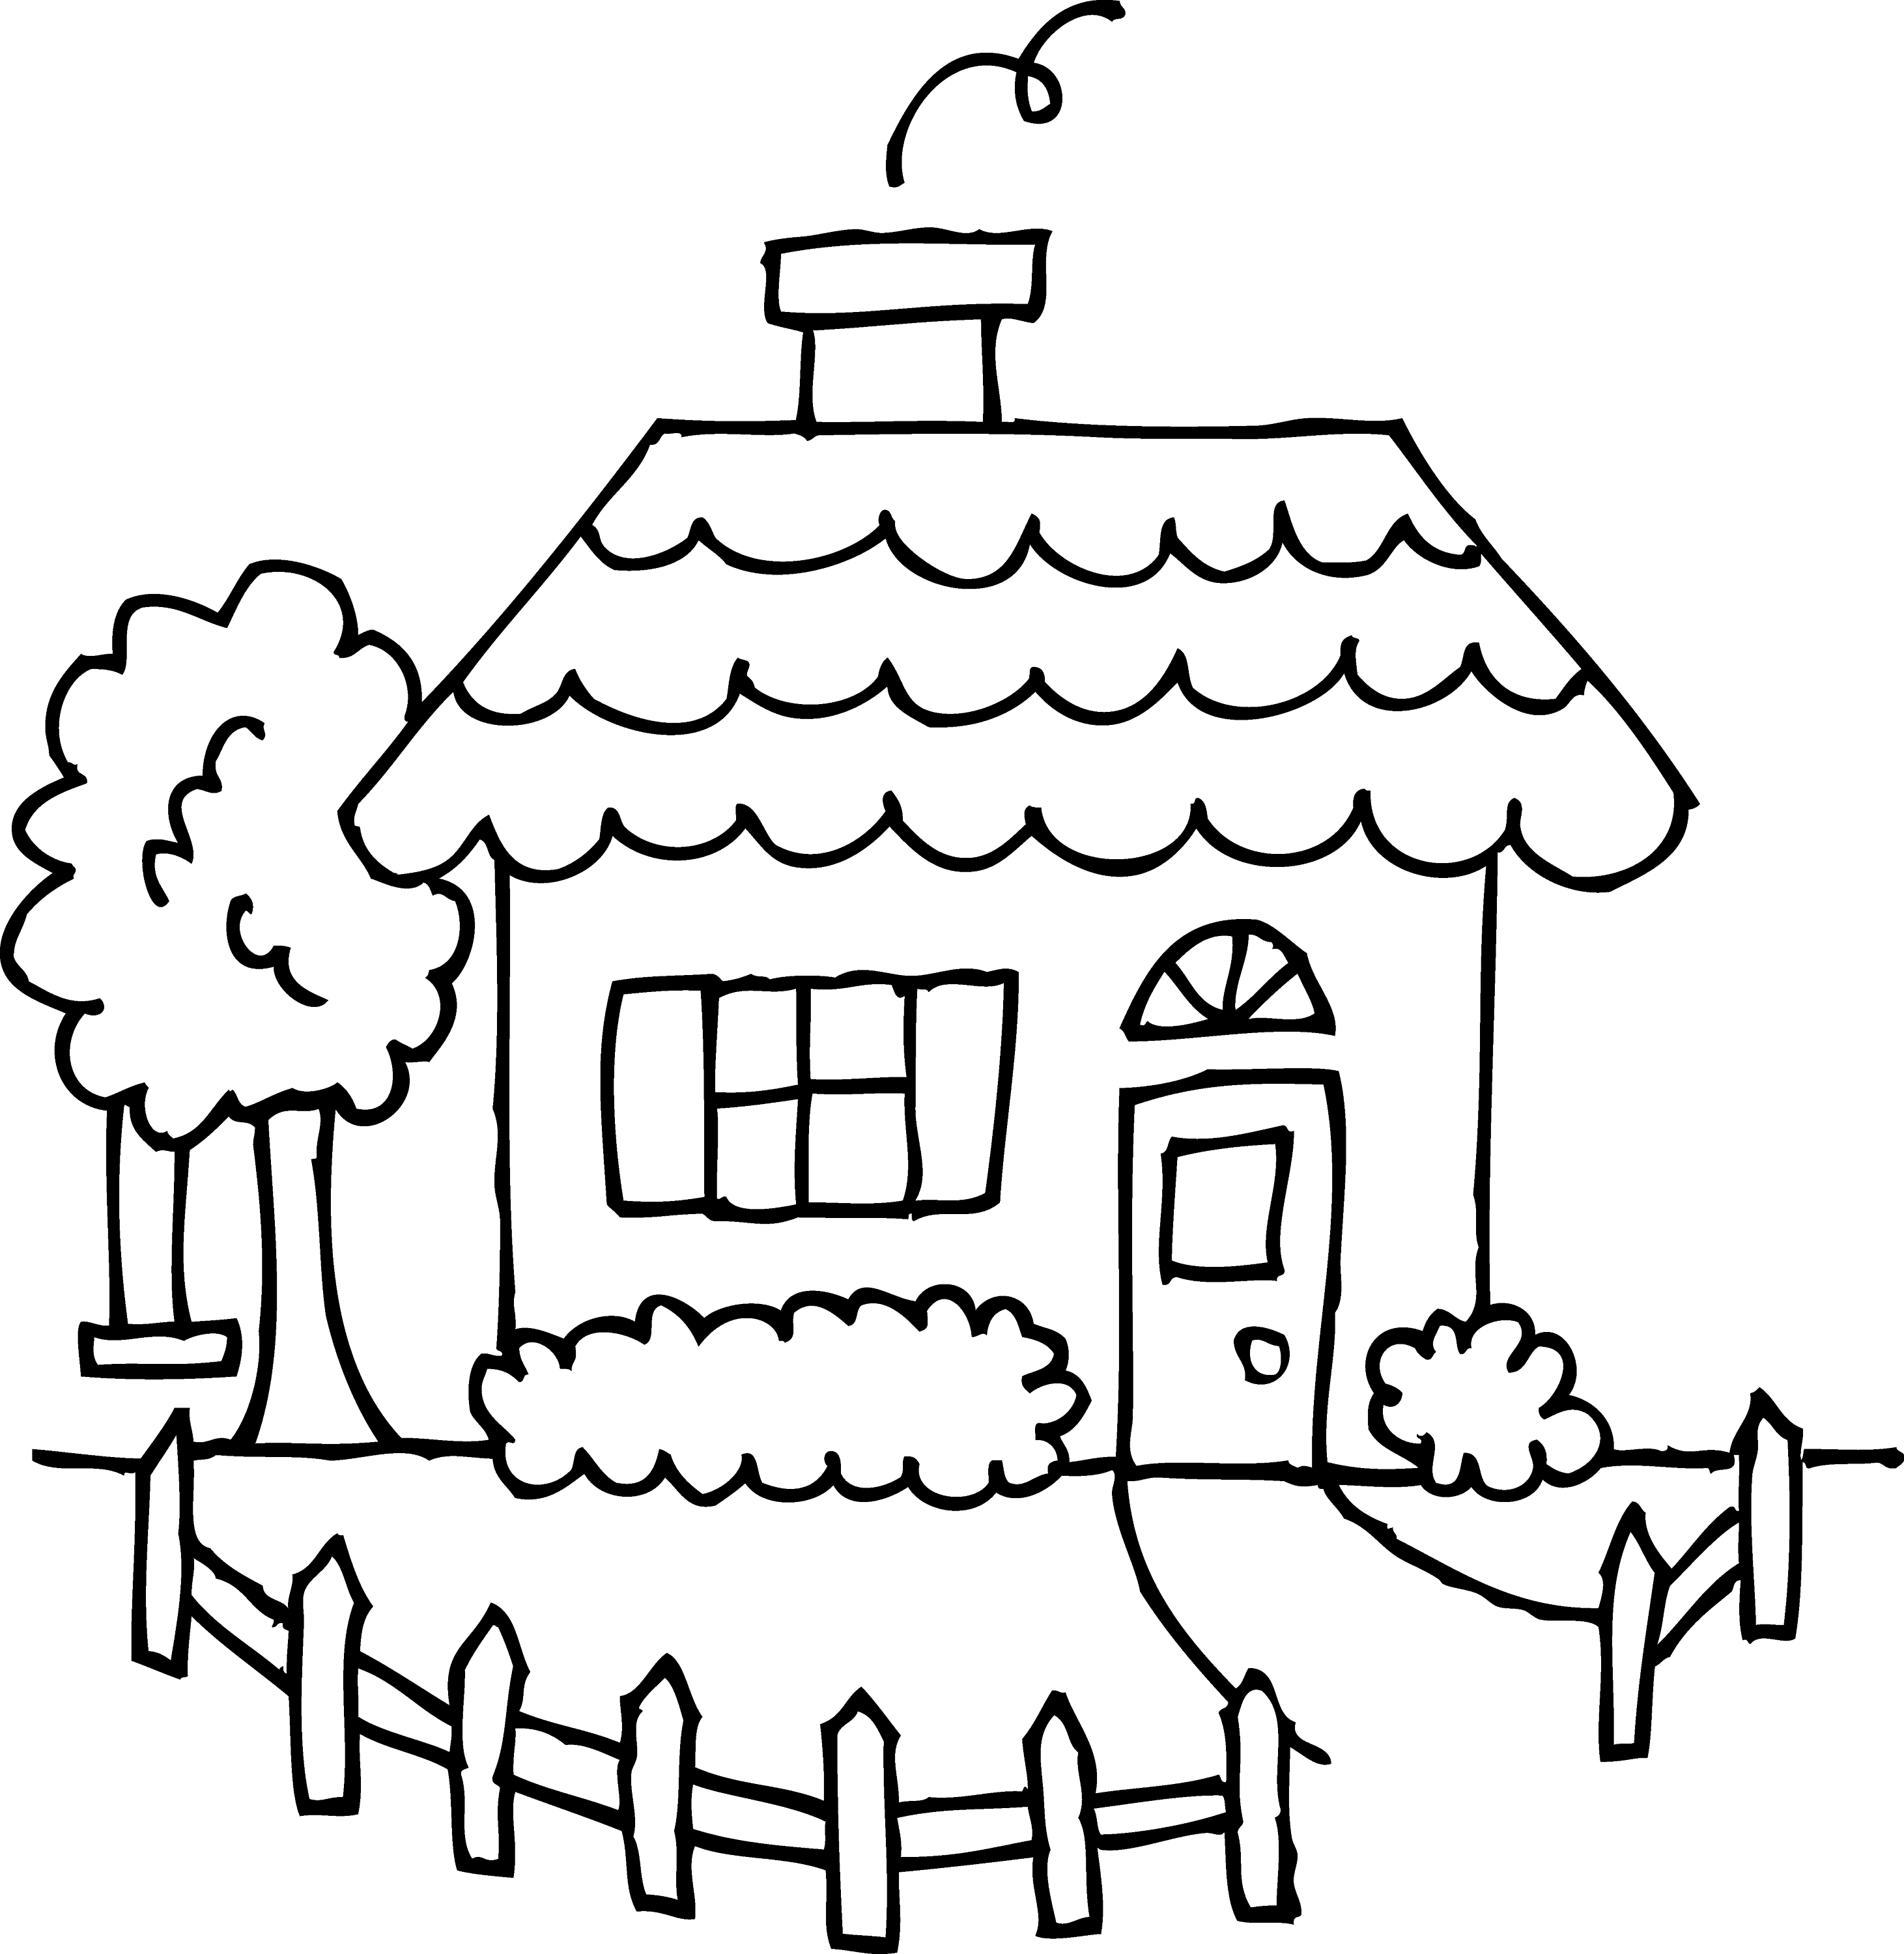 coloring worksheets house house coloring pages downloadable and printable images house worksheets coloring